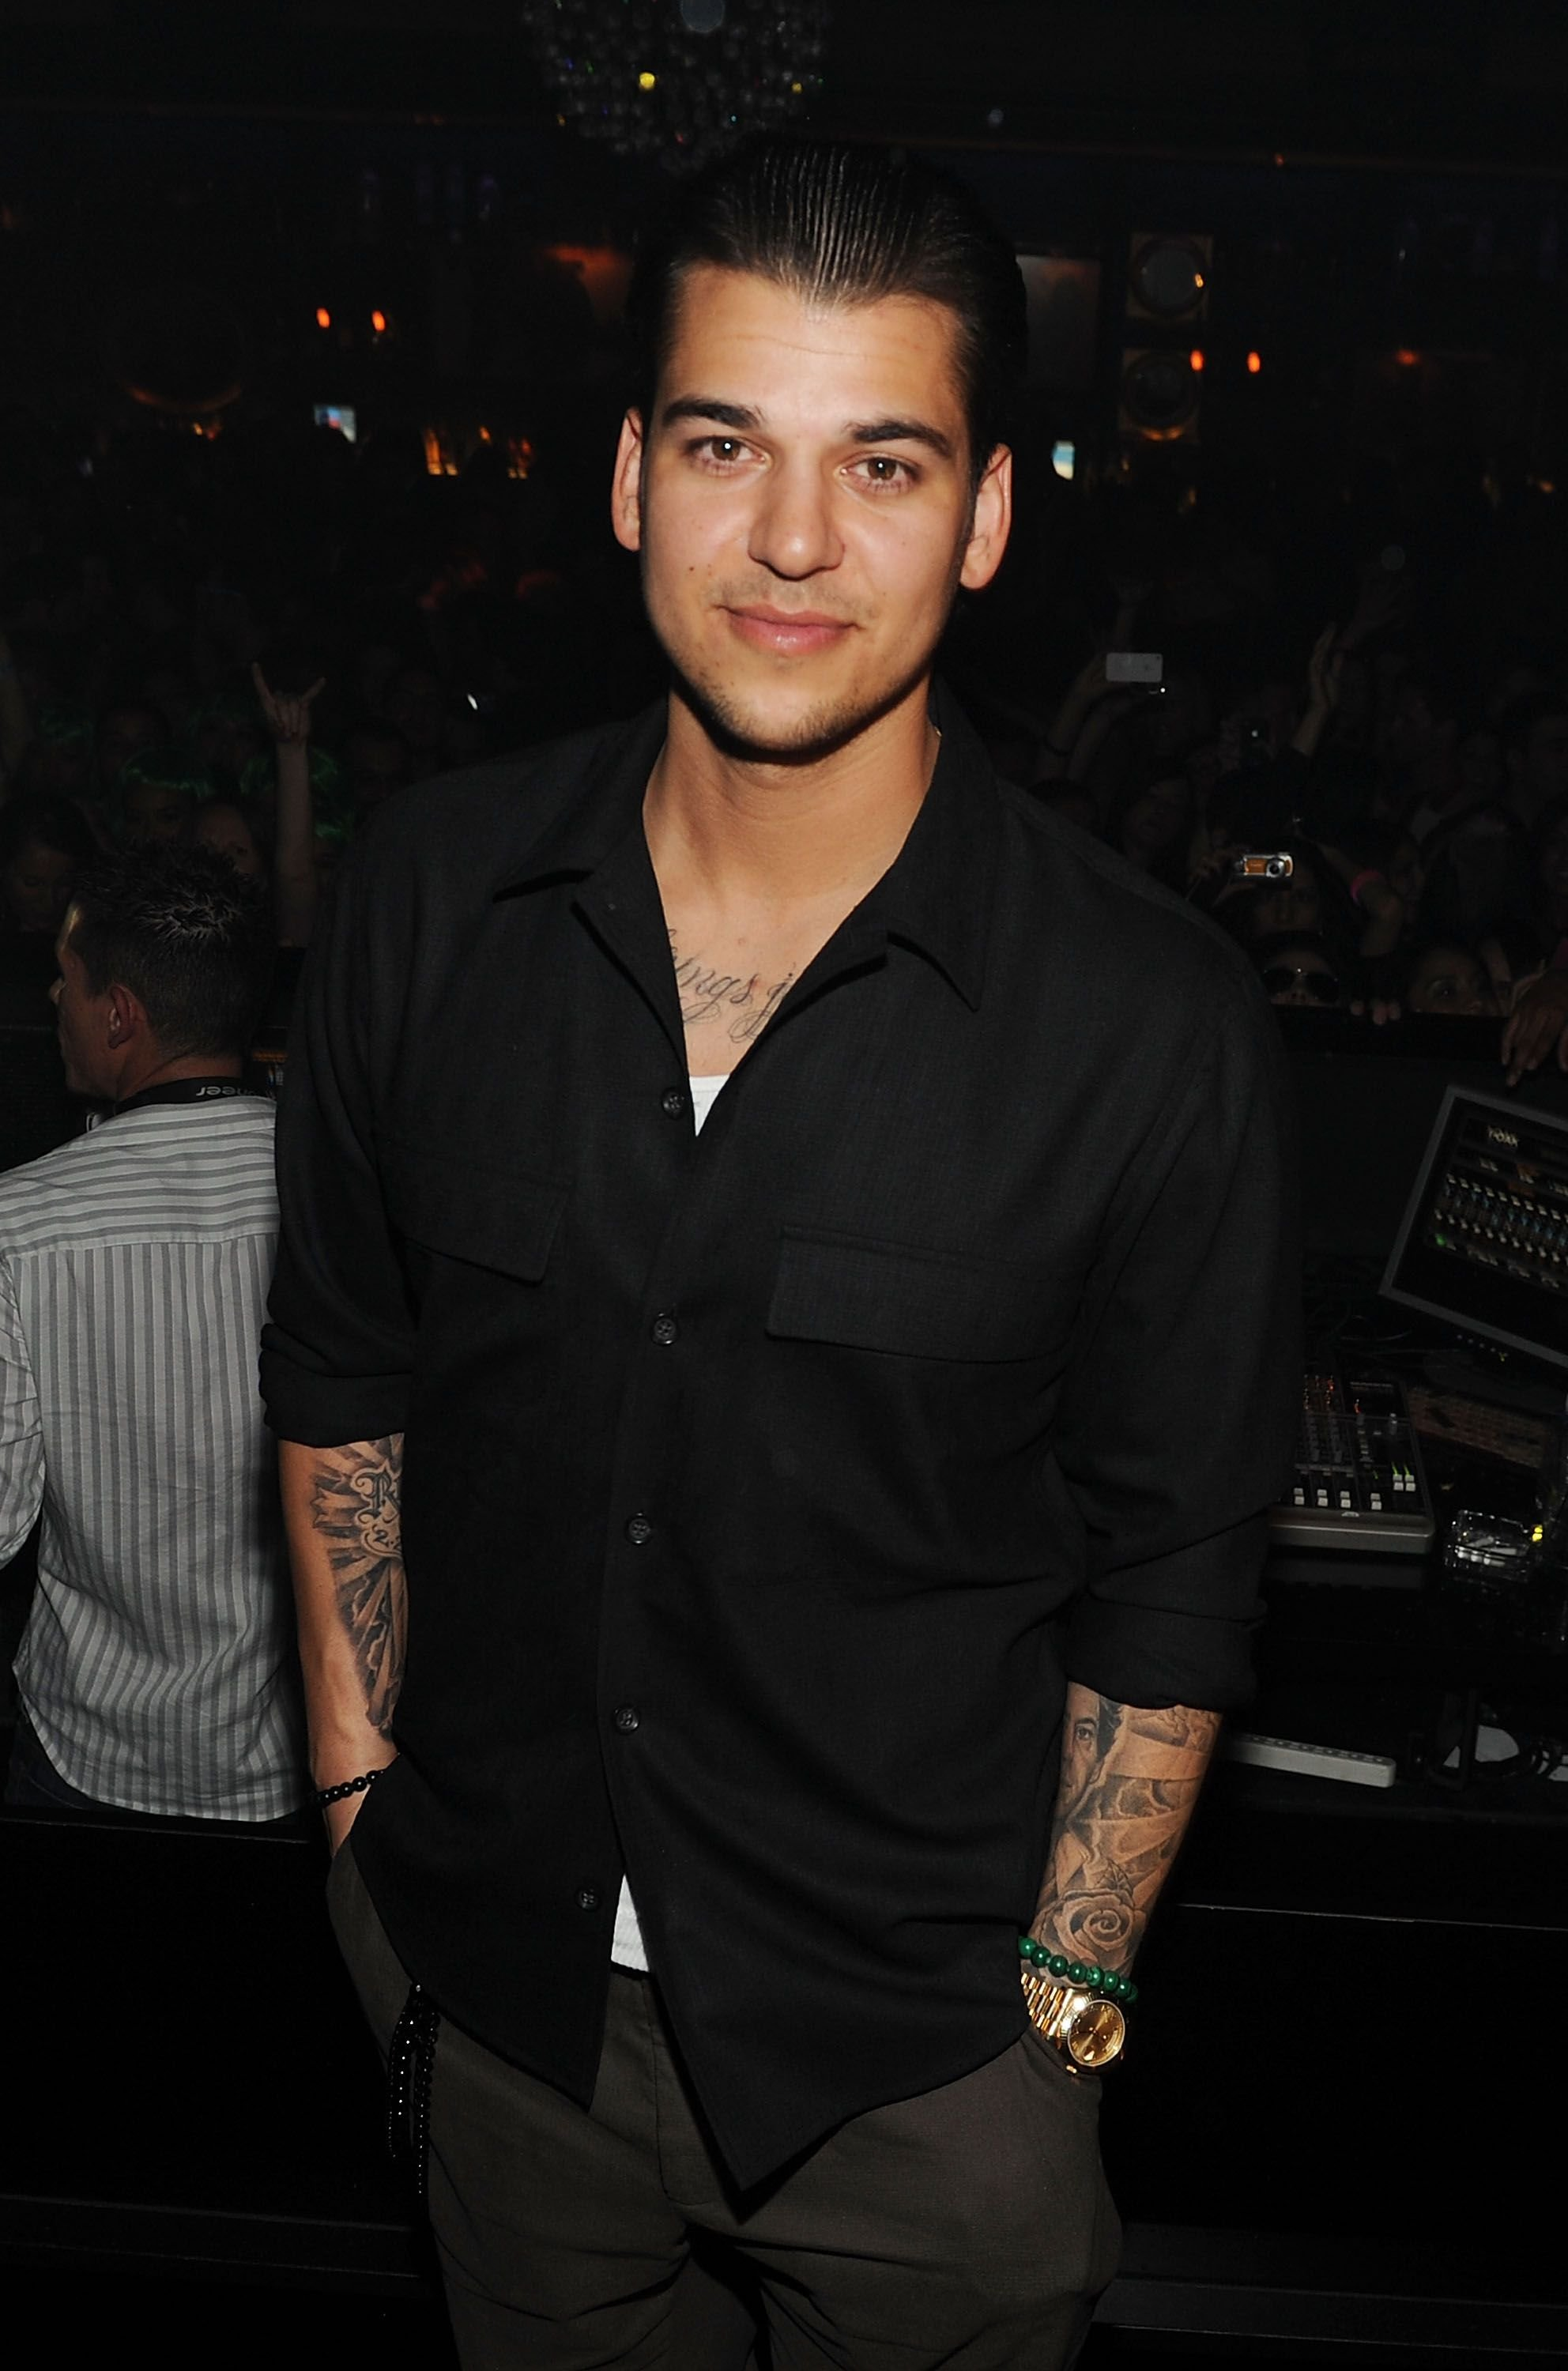 Rob Kardashian during his birthday at 1 Oak on March 16, 2012 in Las Vegas, Nevada. | Source: Getty Images